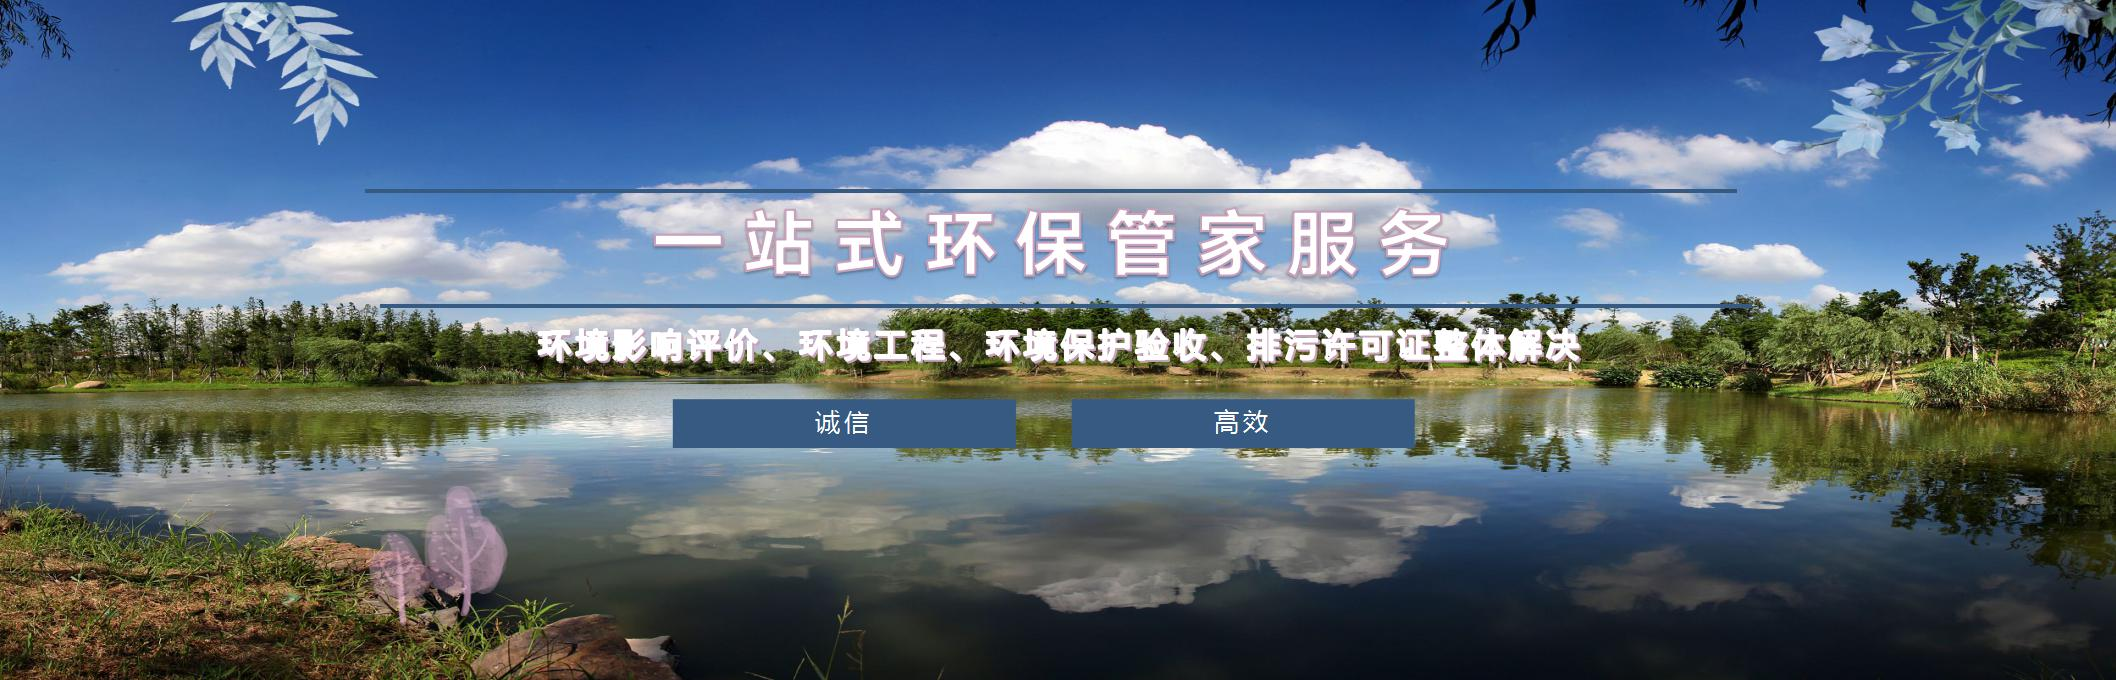 http://www.chenglvest.com/data/upload/202010/20201010182118_749.jpg